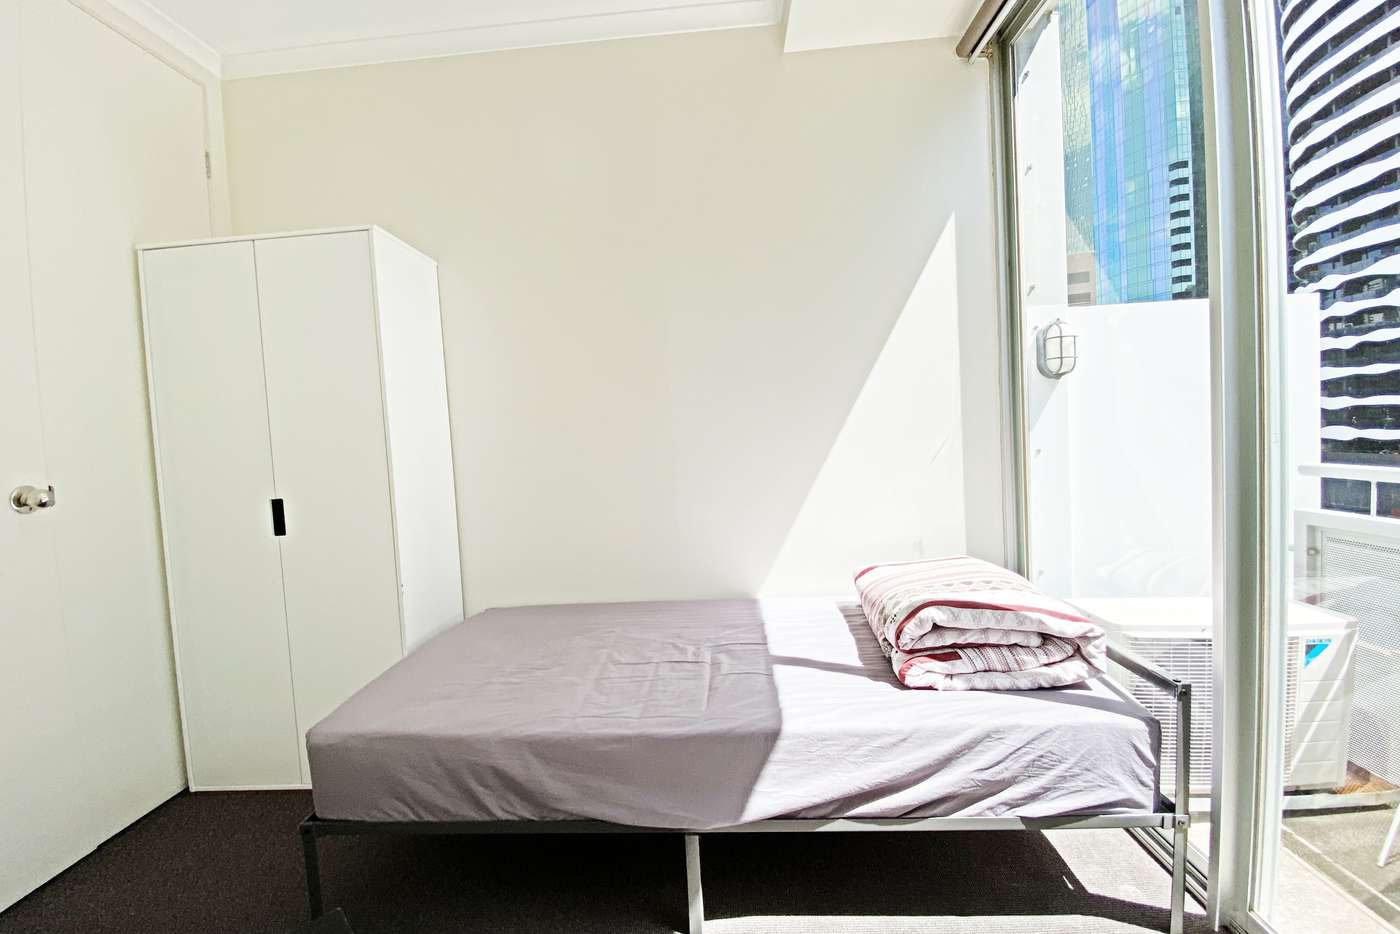 Sixth view of Homely apartment listing, 963/488 Swanston Street, Carlton VIC 3053